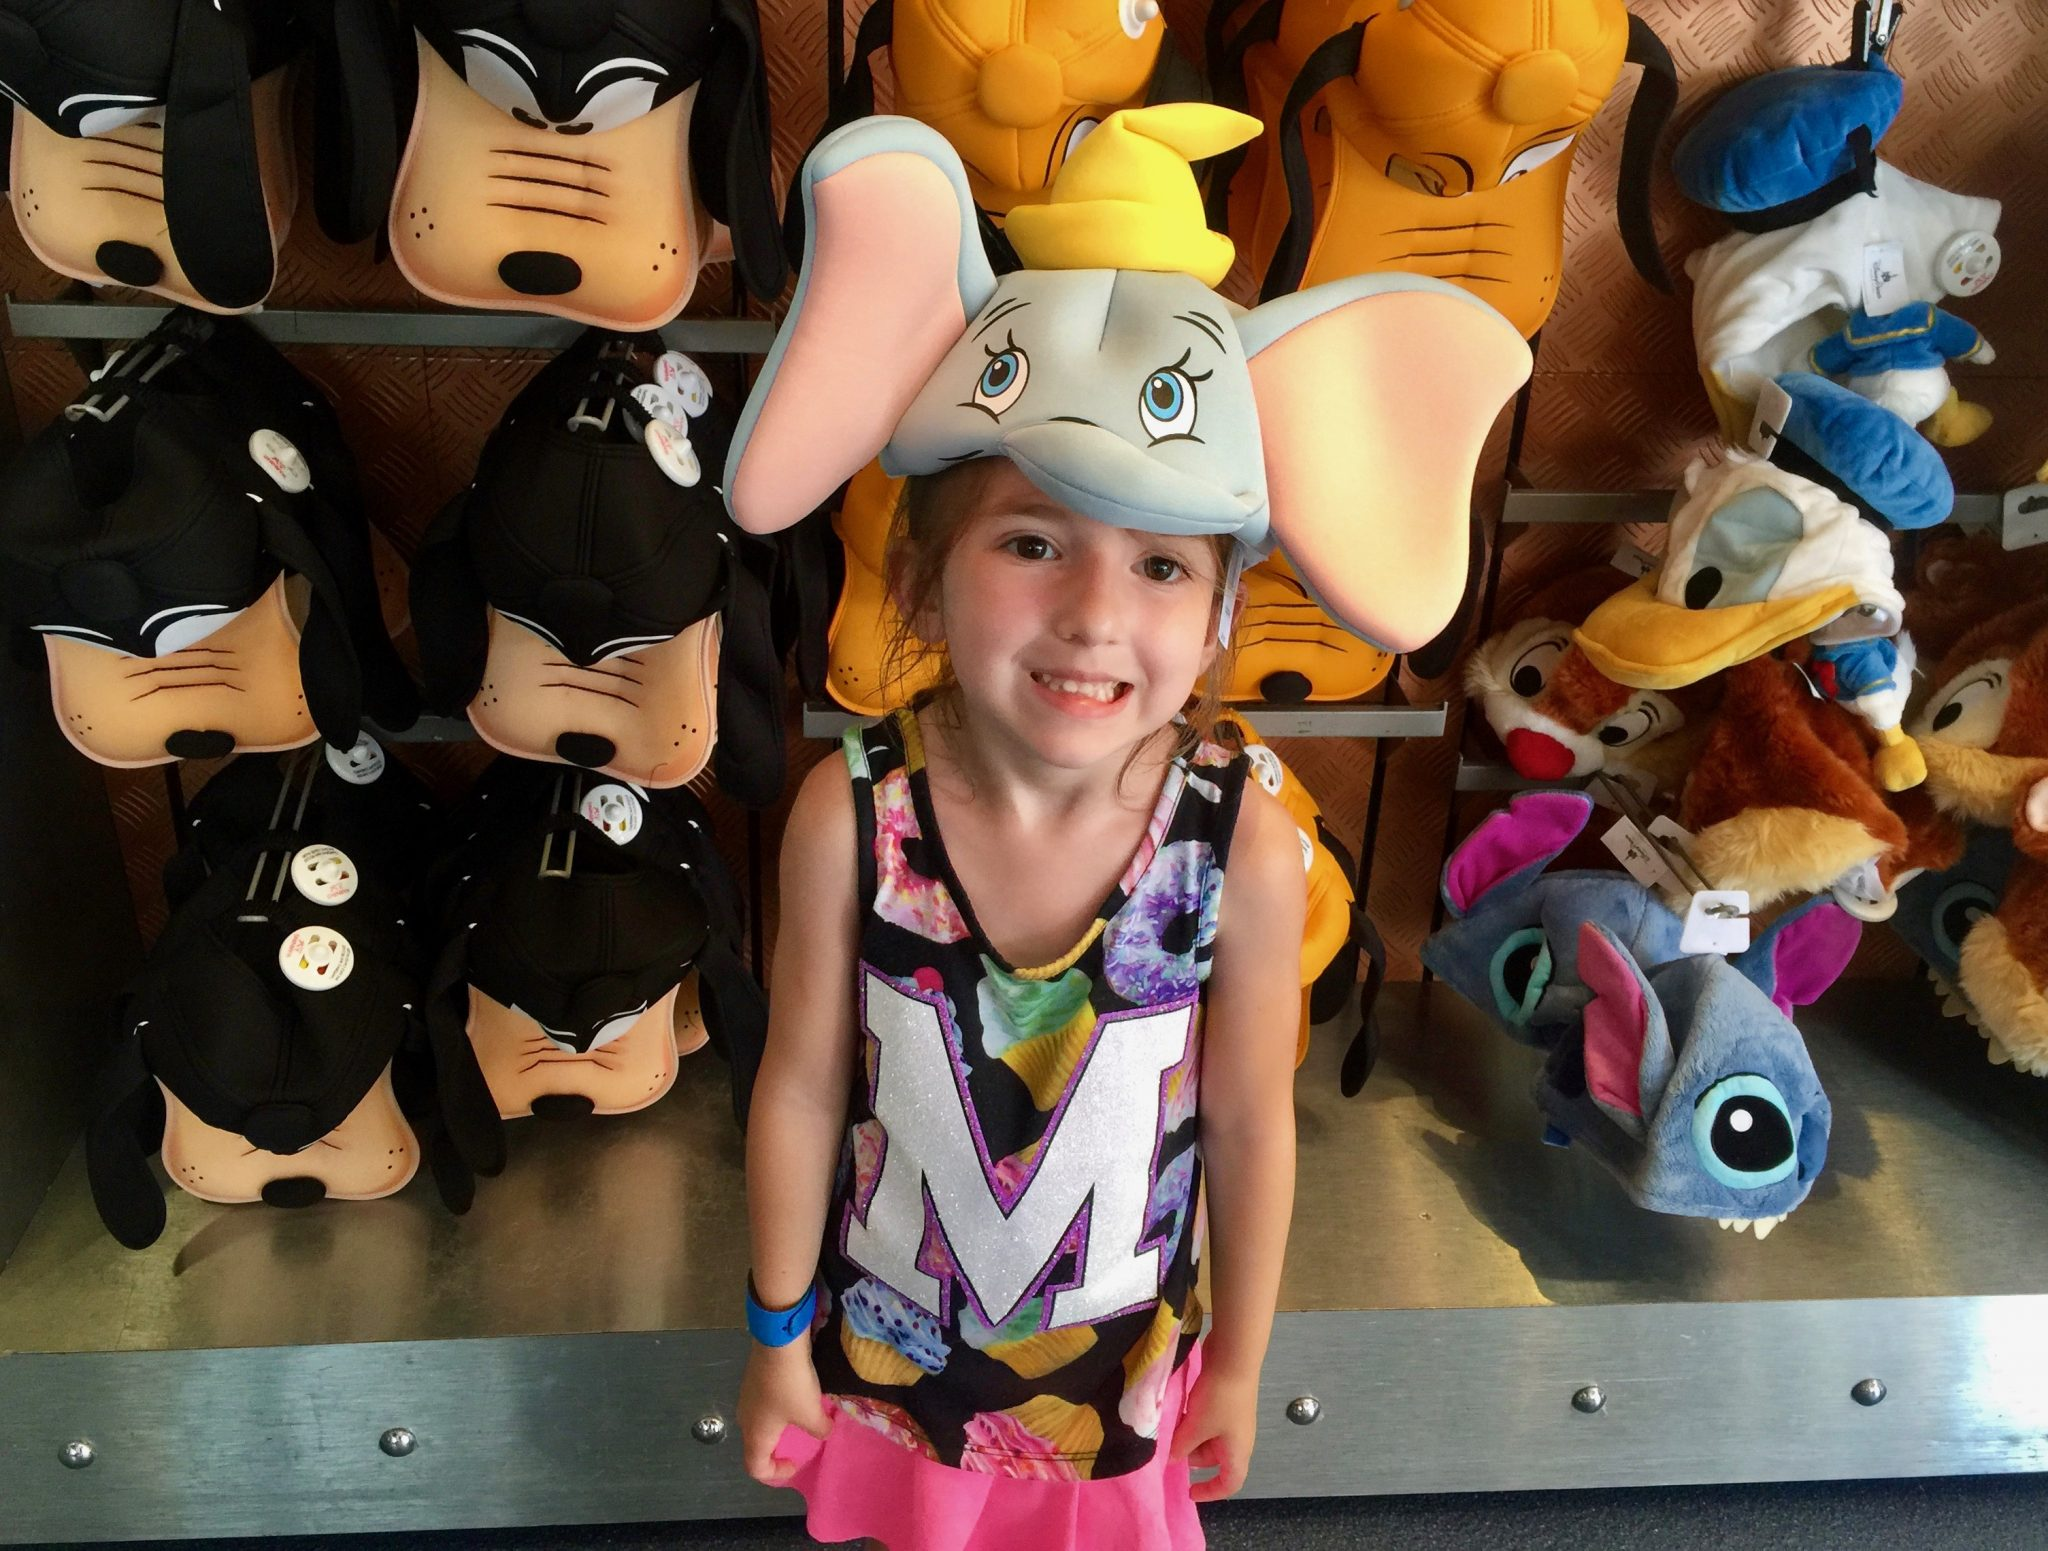 Disney world, This Mom's Confessions